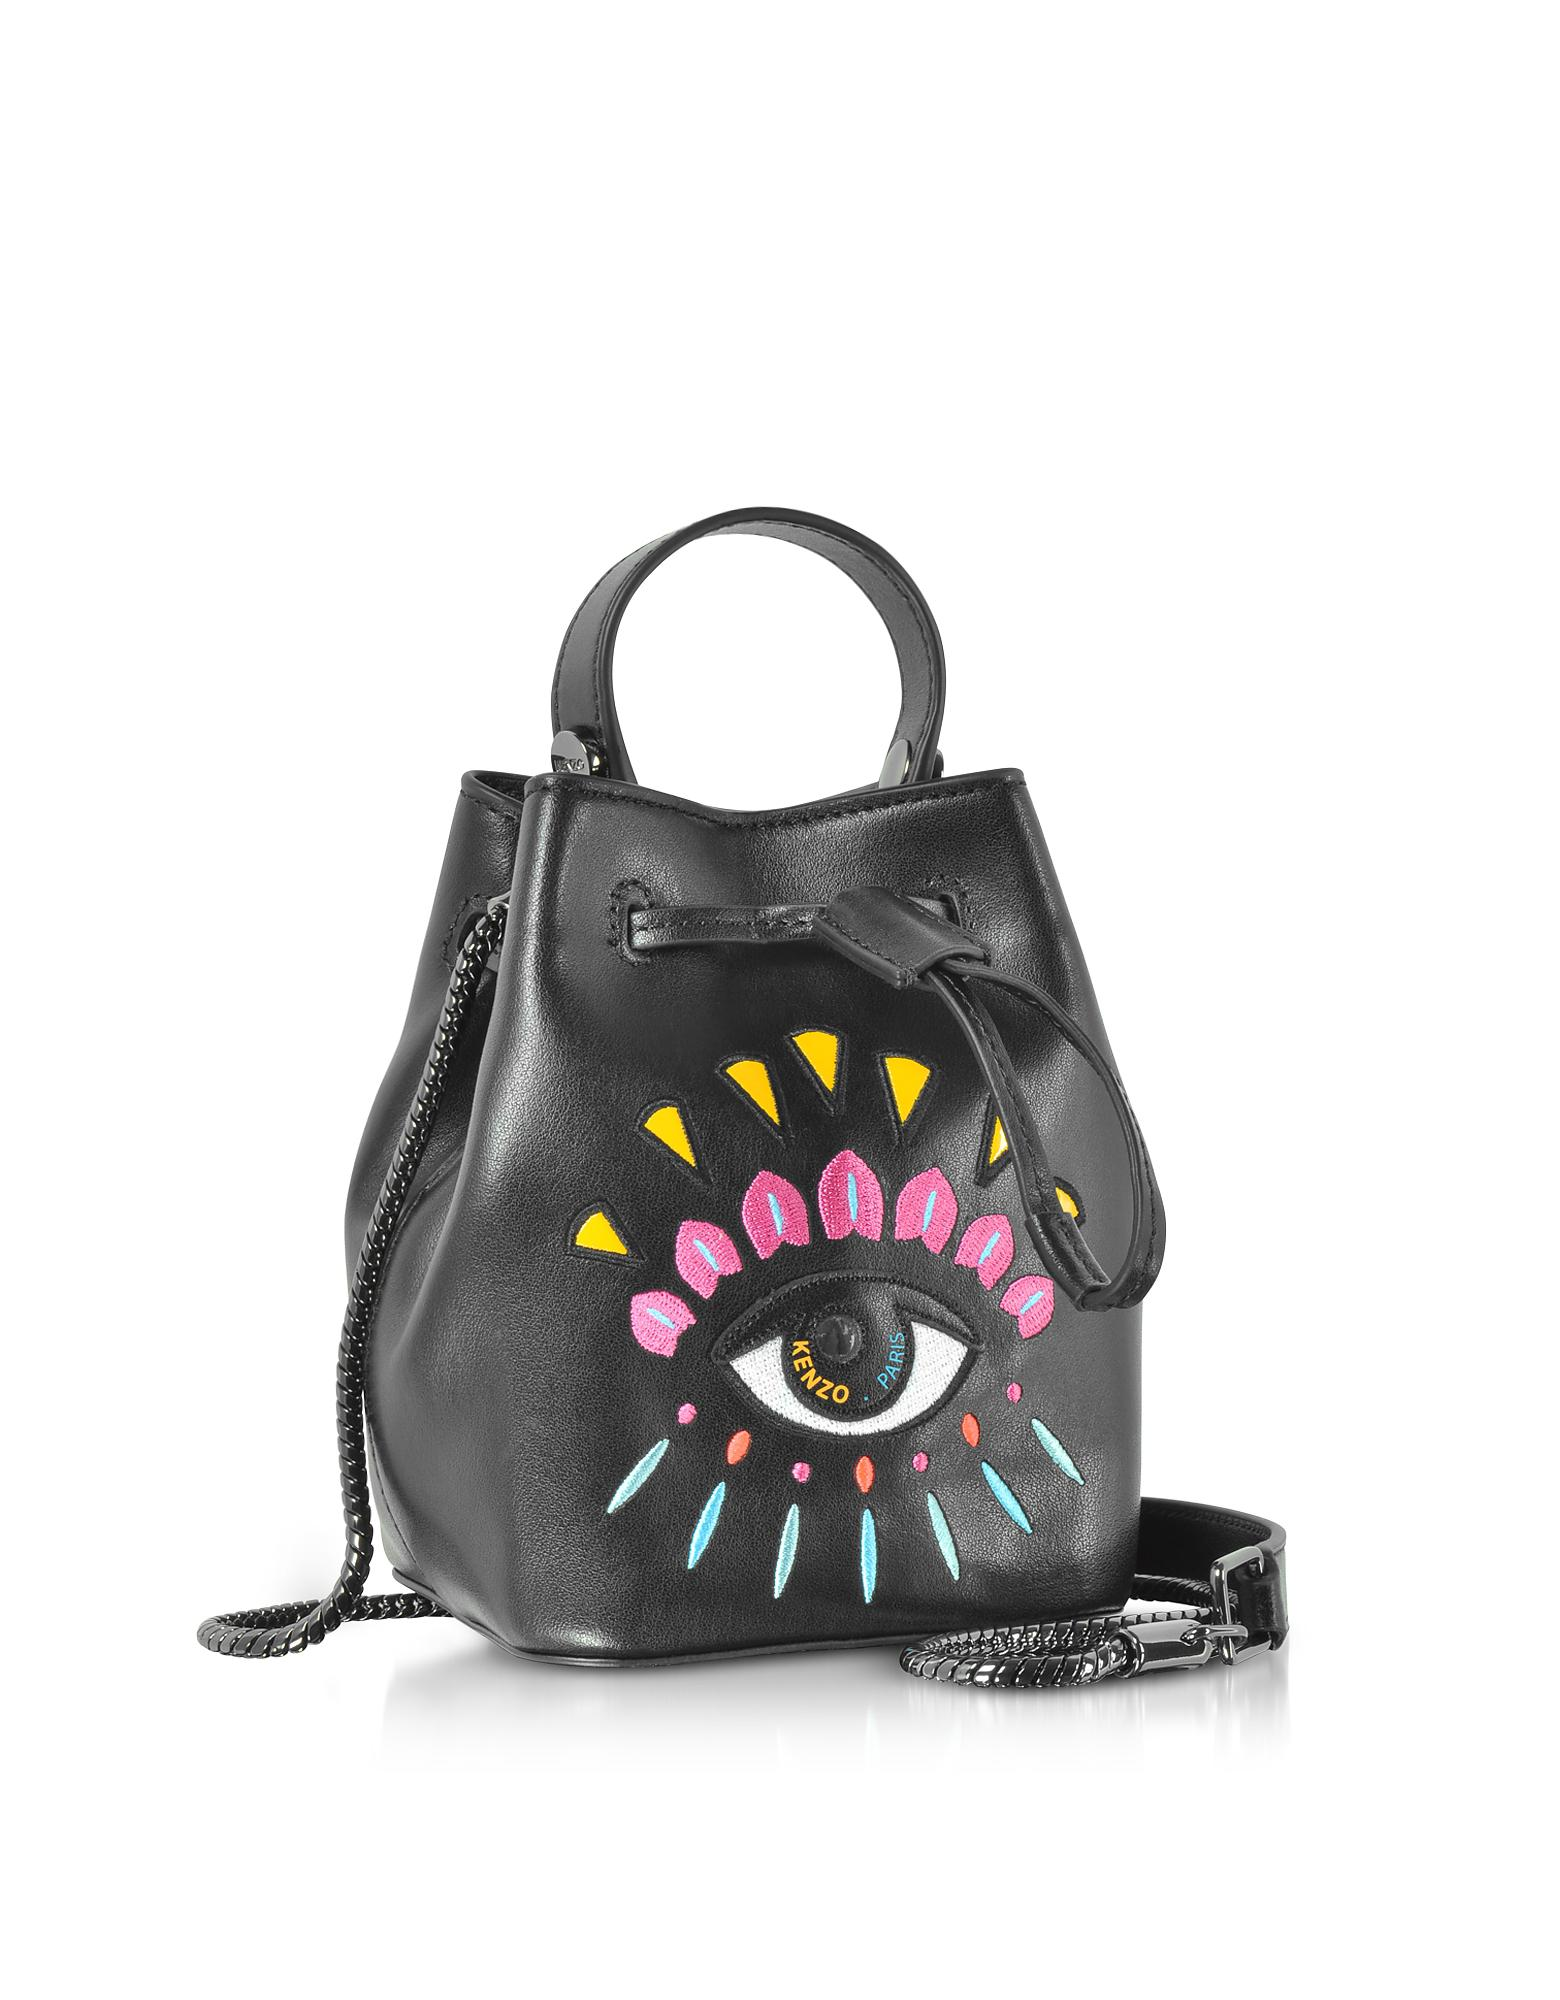 7b026f6837 KENZO Black Leather Mini Eye Bucket Bag